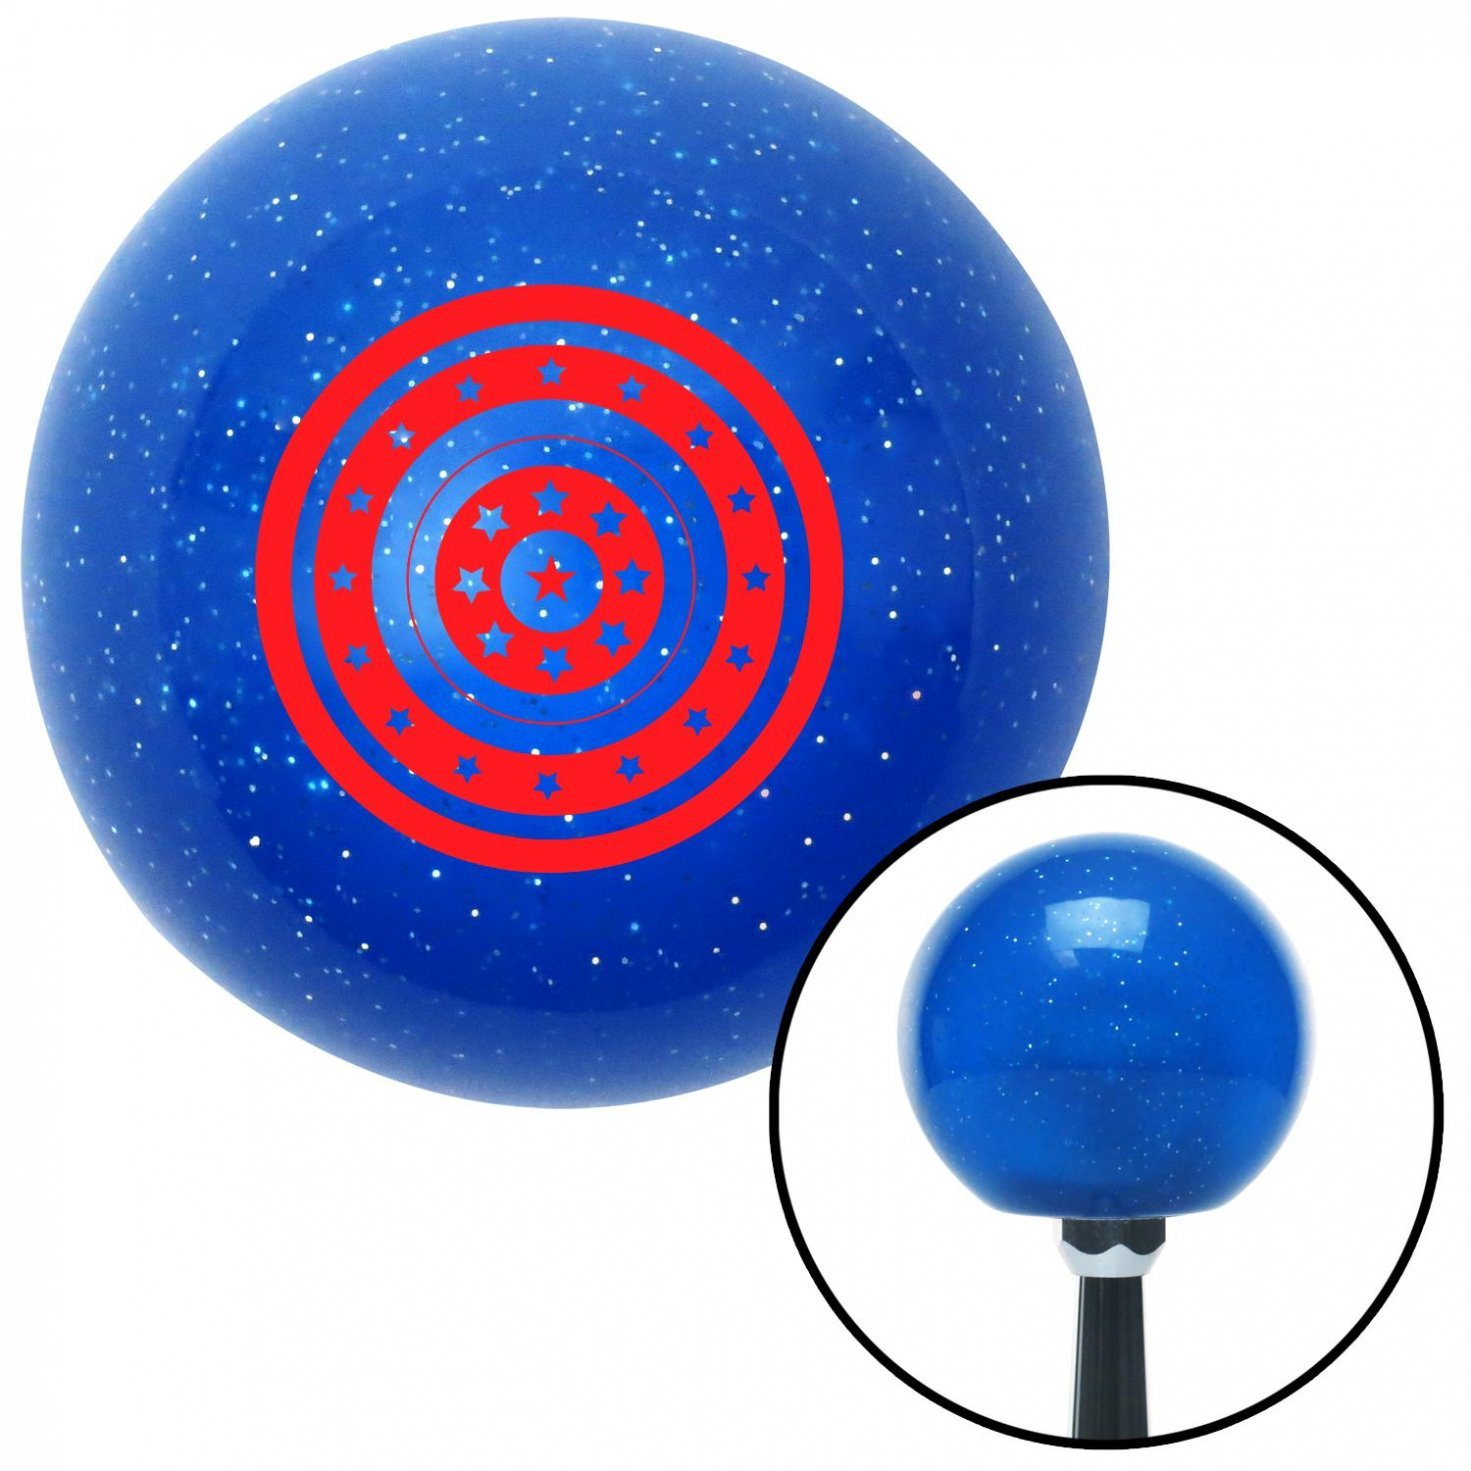 Red Stars in Circle Formation American Shifter 20264 Blue Metal Flake Shift Knob